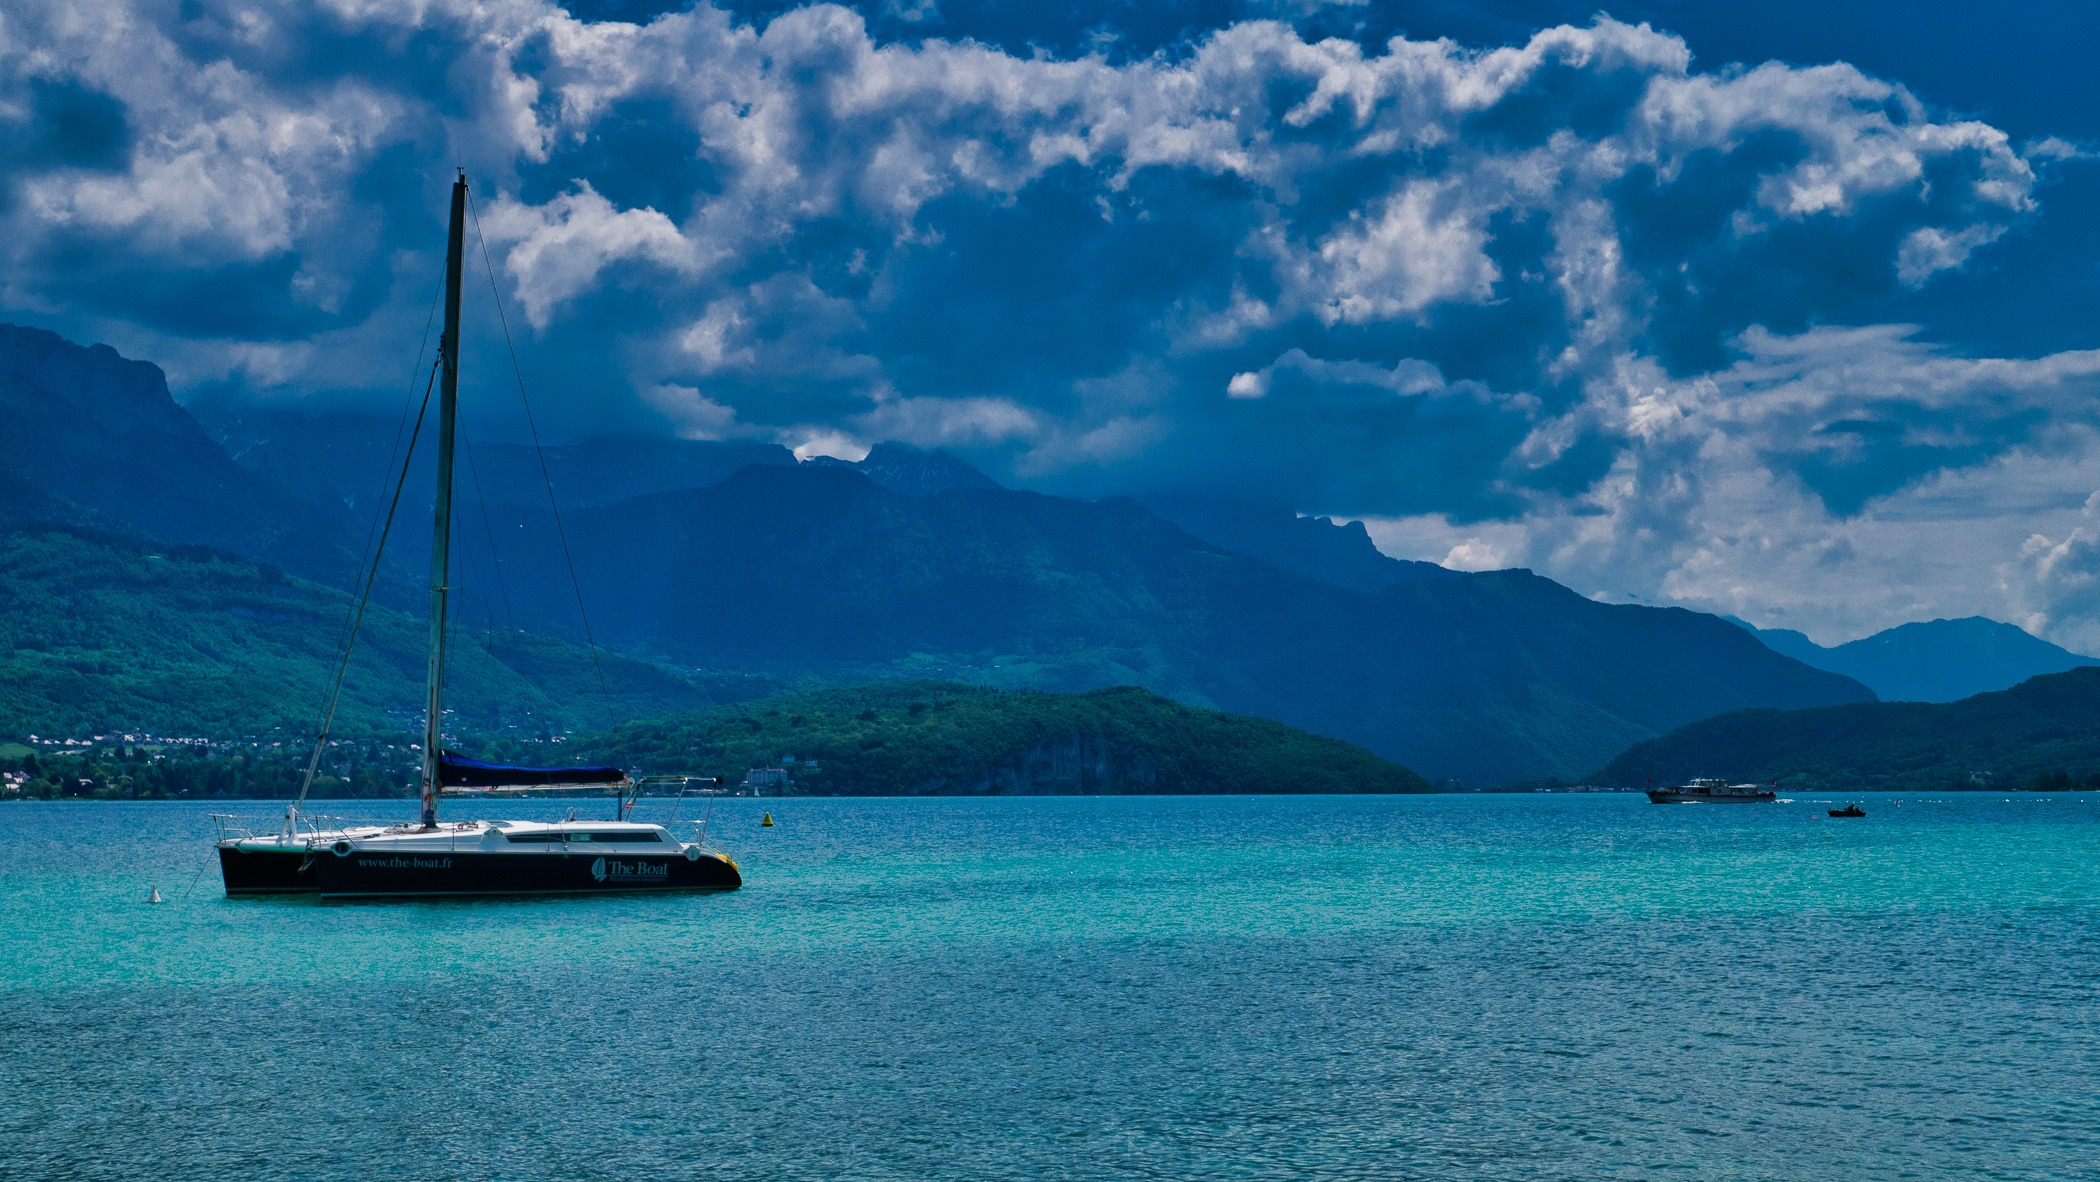 Blue waters of Lake Annecy